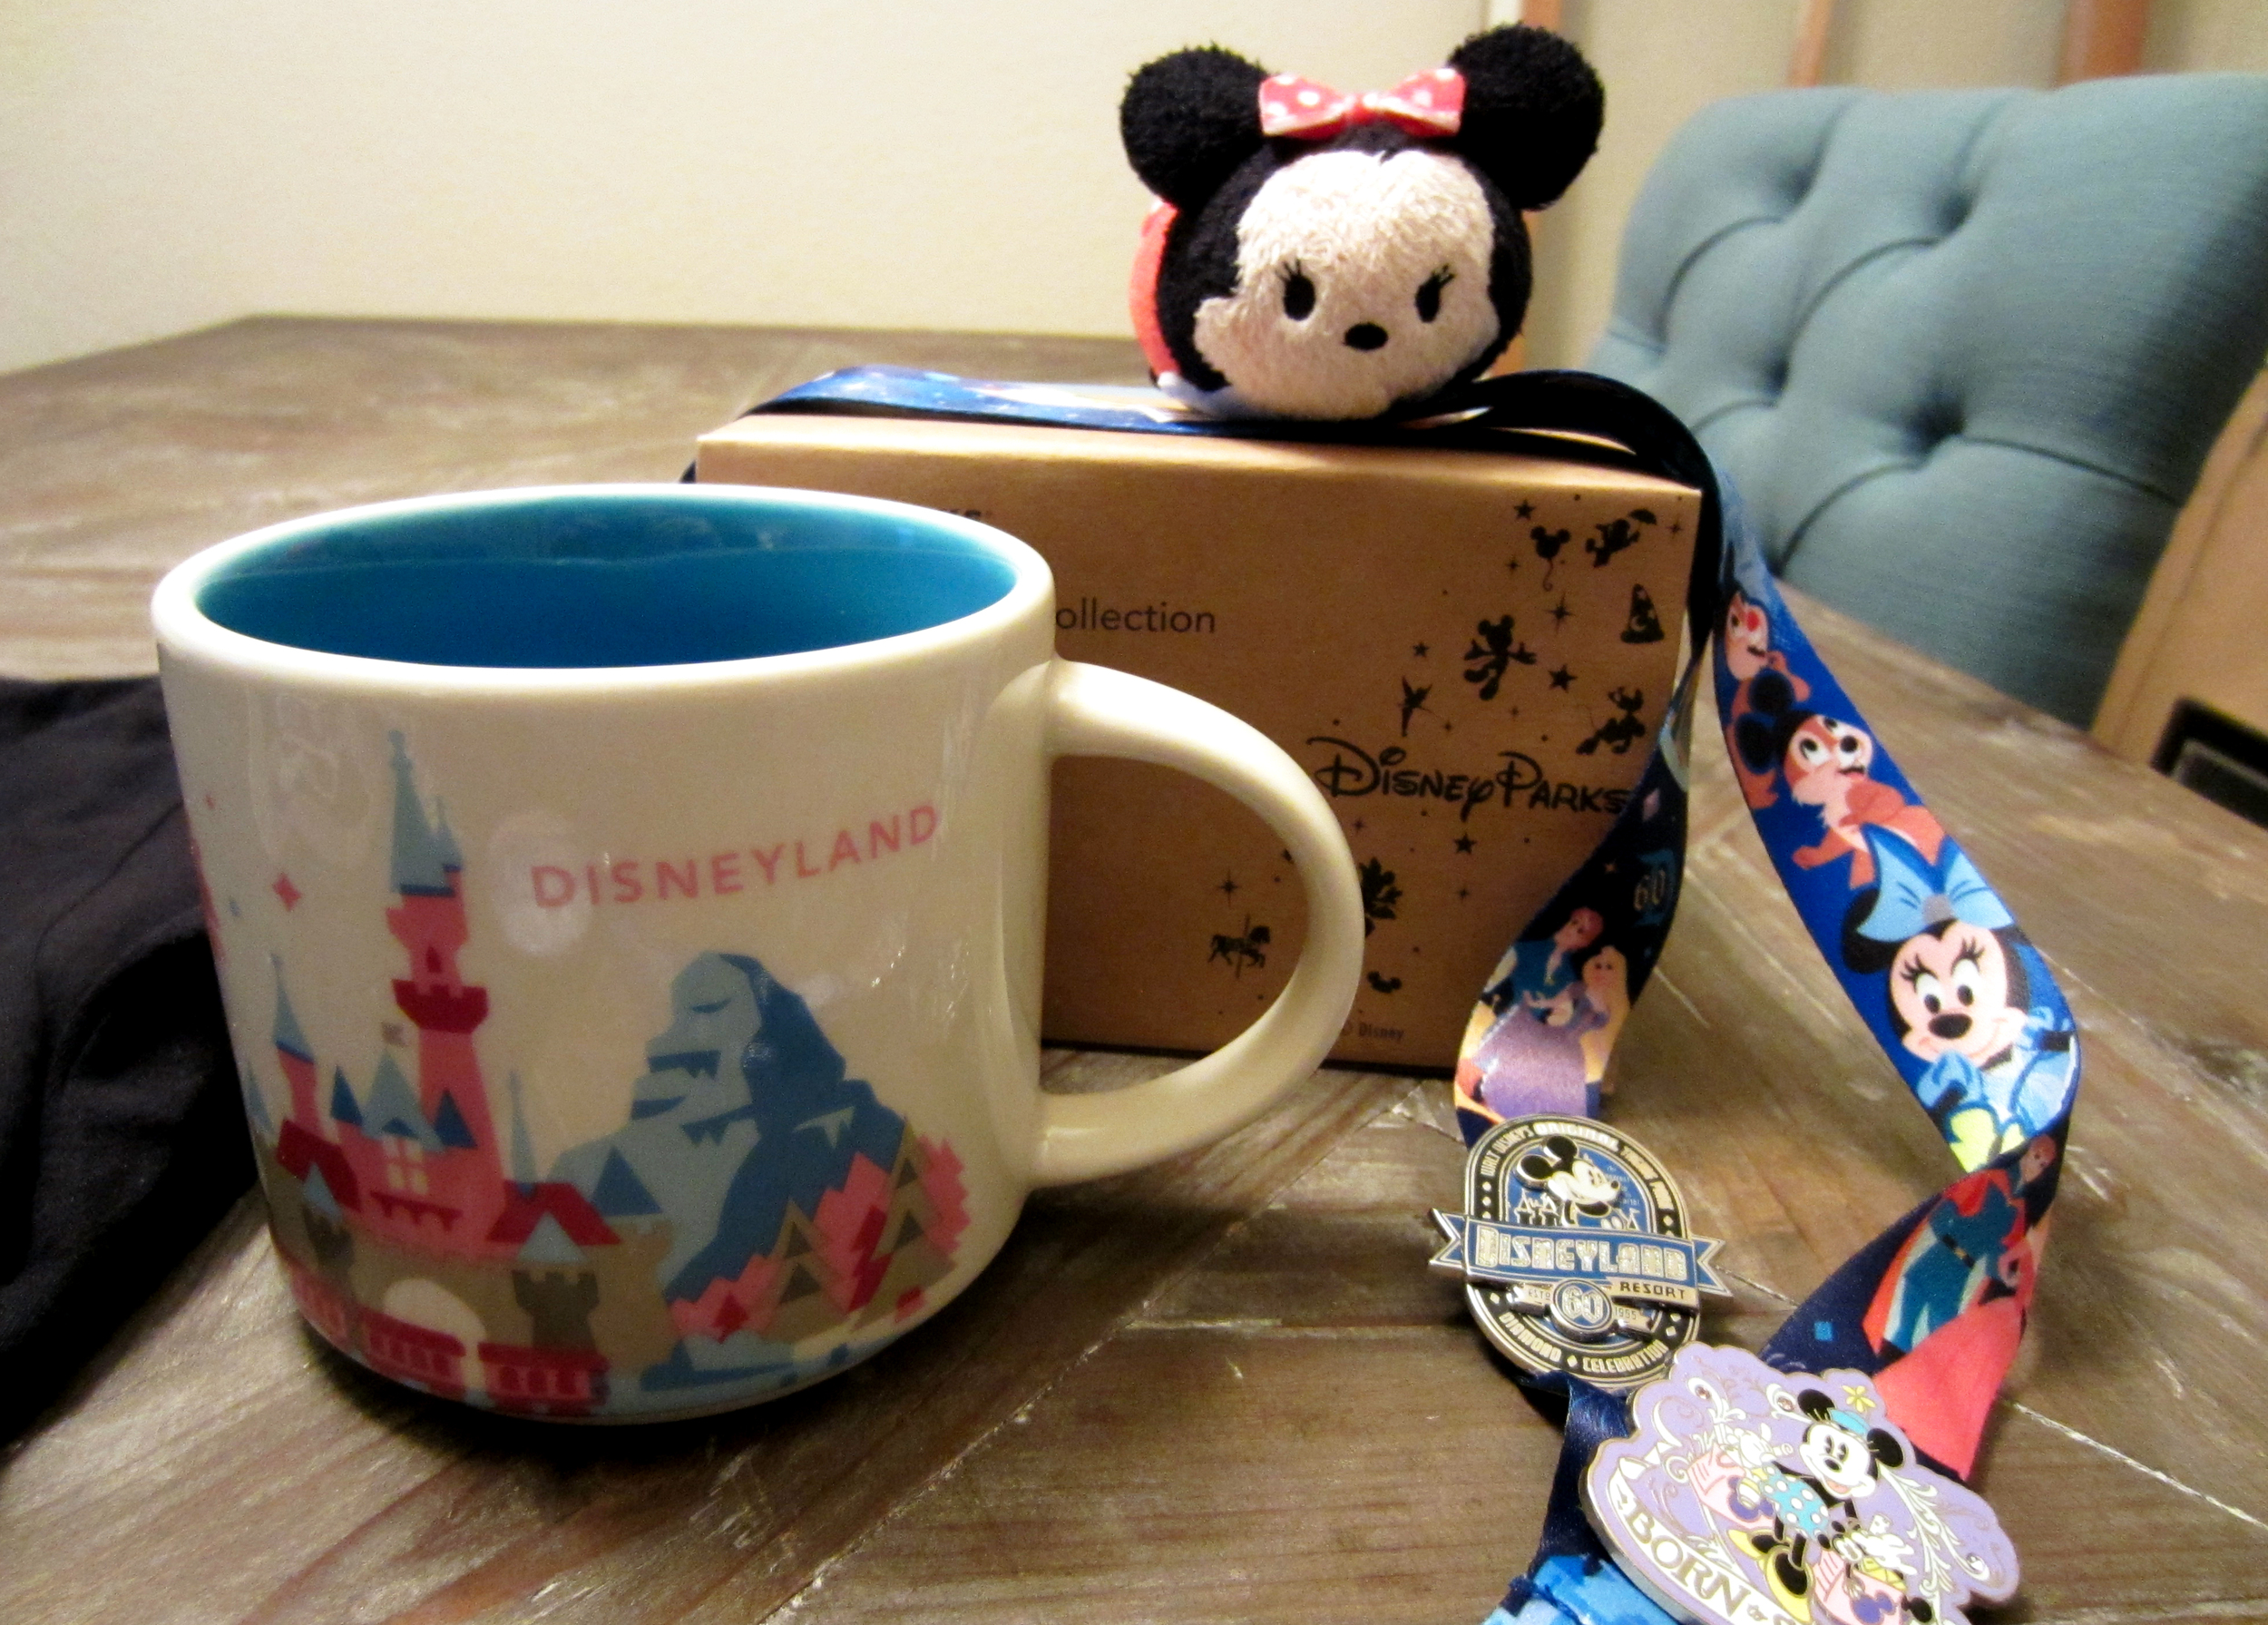 I was also super stoked to find the Starbucks 'You Are Here' Disneyland mug! A great one to add to my Disney mug collection.